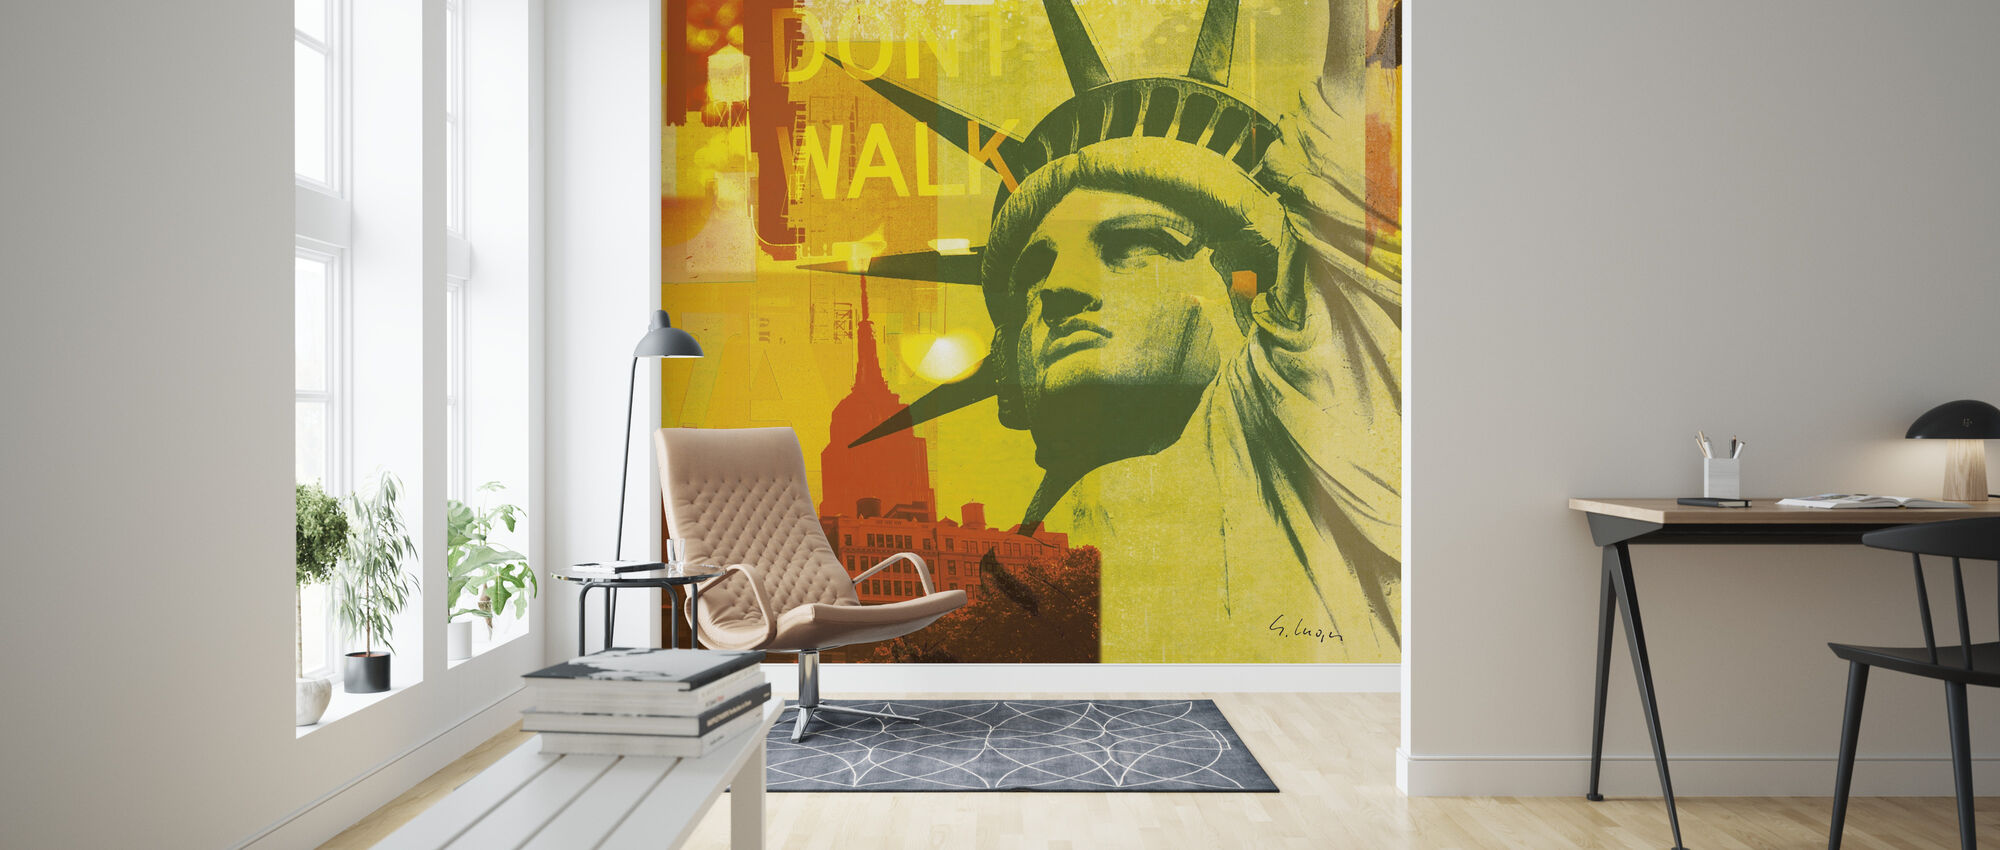 New York Dont Walk III - Wallpaper - Living Room